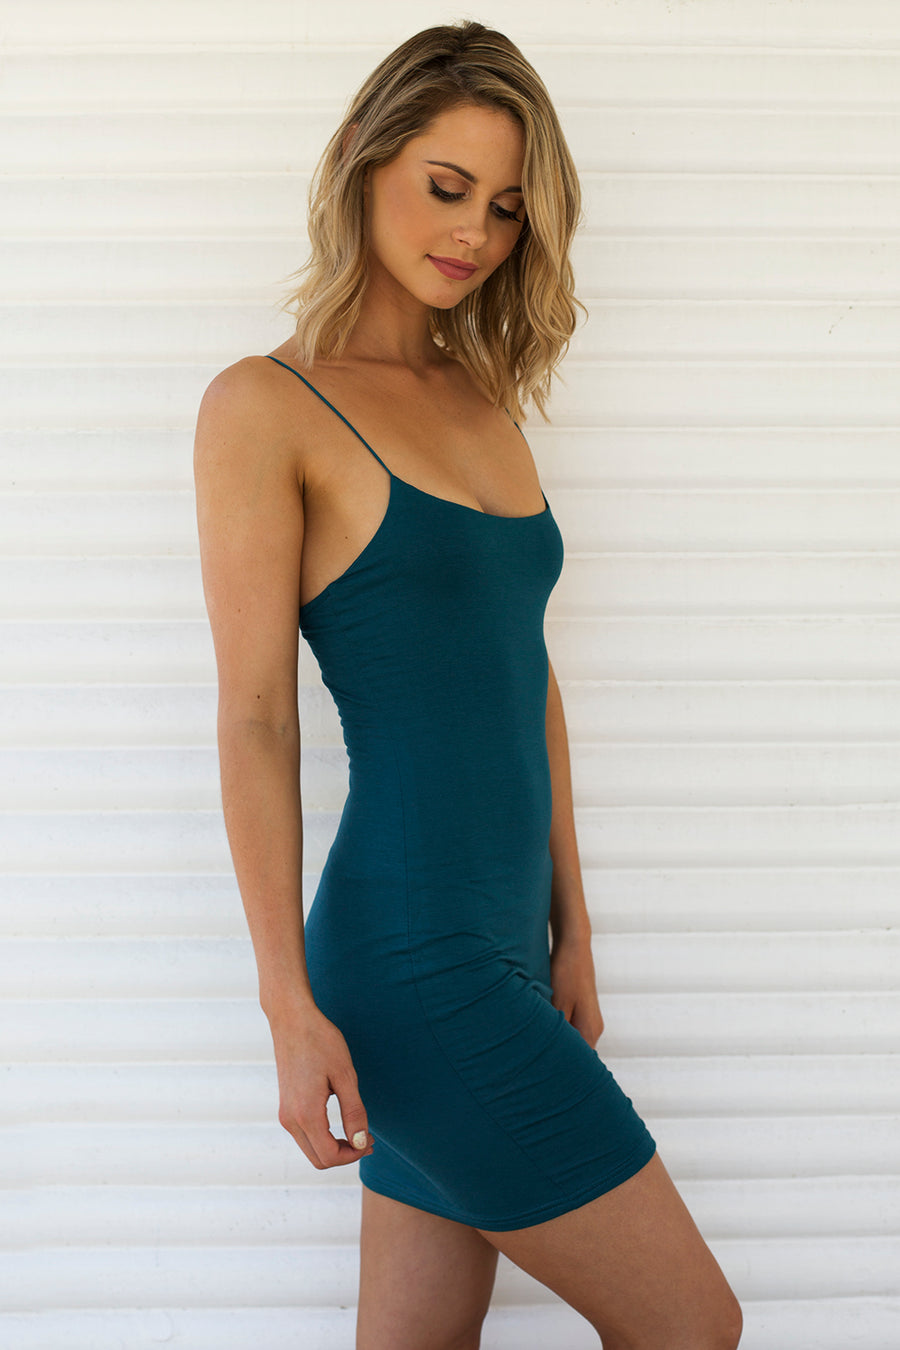 Hold Me Tight Slip Dress in Teal for $25.00